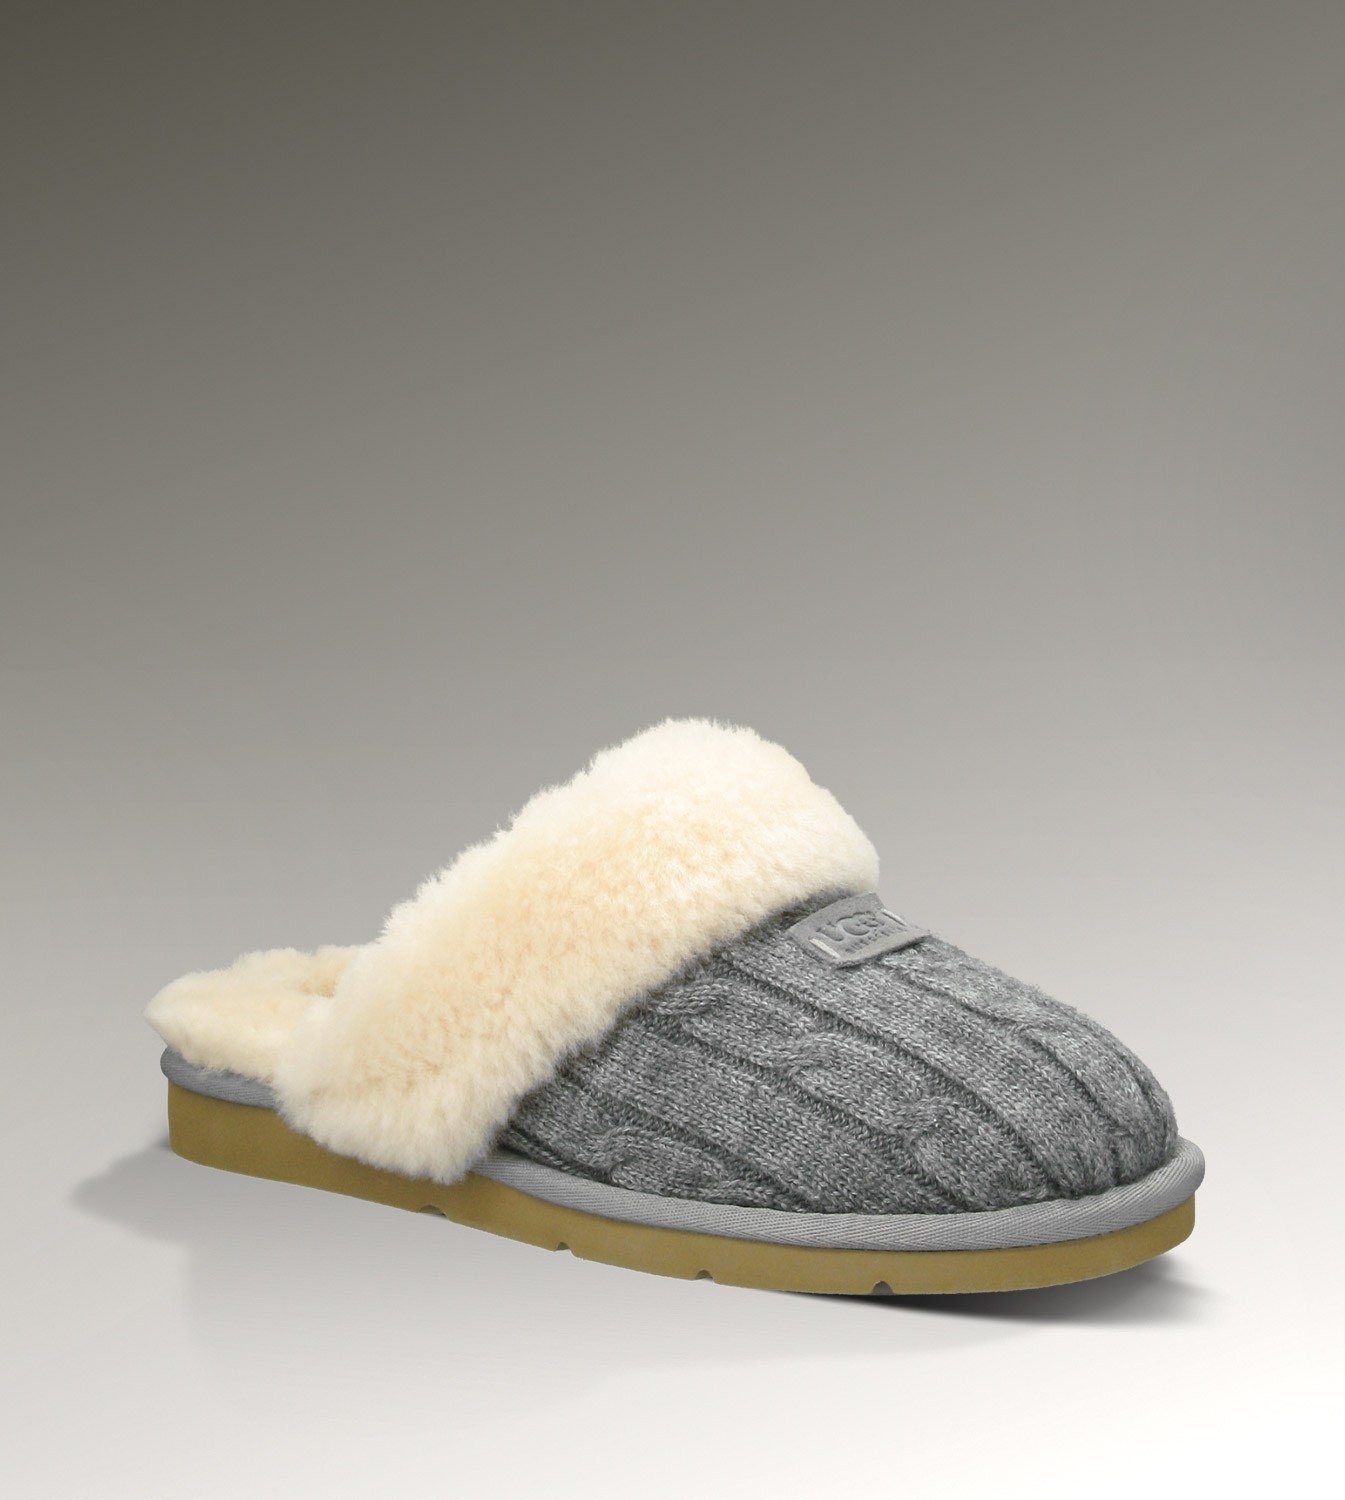 UGG Cozy Knit 1865 Grey Slippers